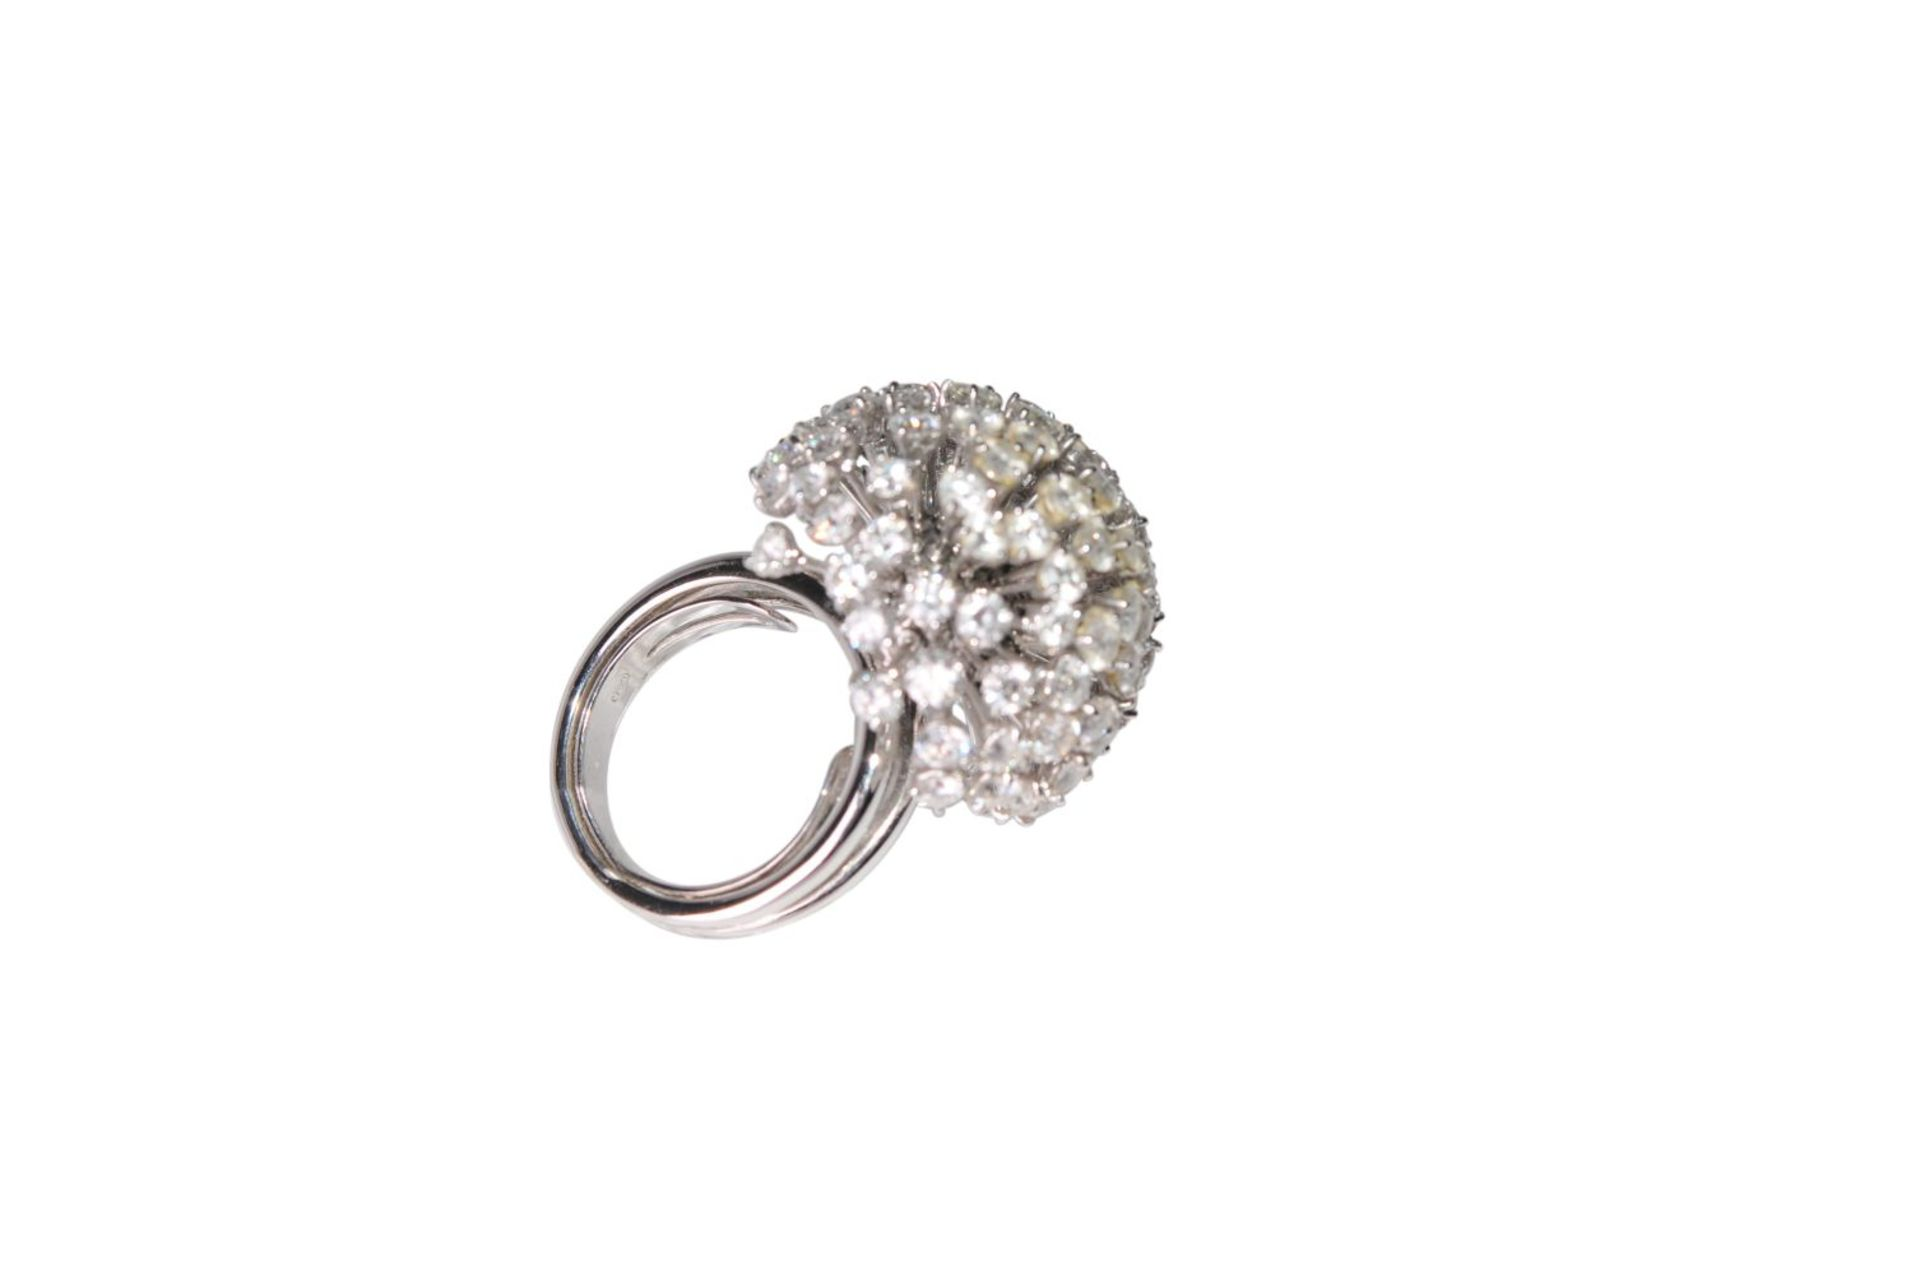 Los 122 - Brilliant ring18kt white gold ring with brilliants total carat weight approx. 6ct, total weight 24.